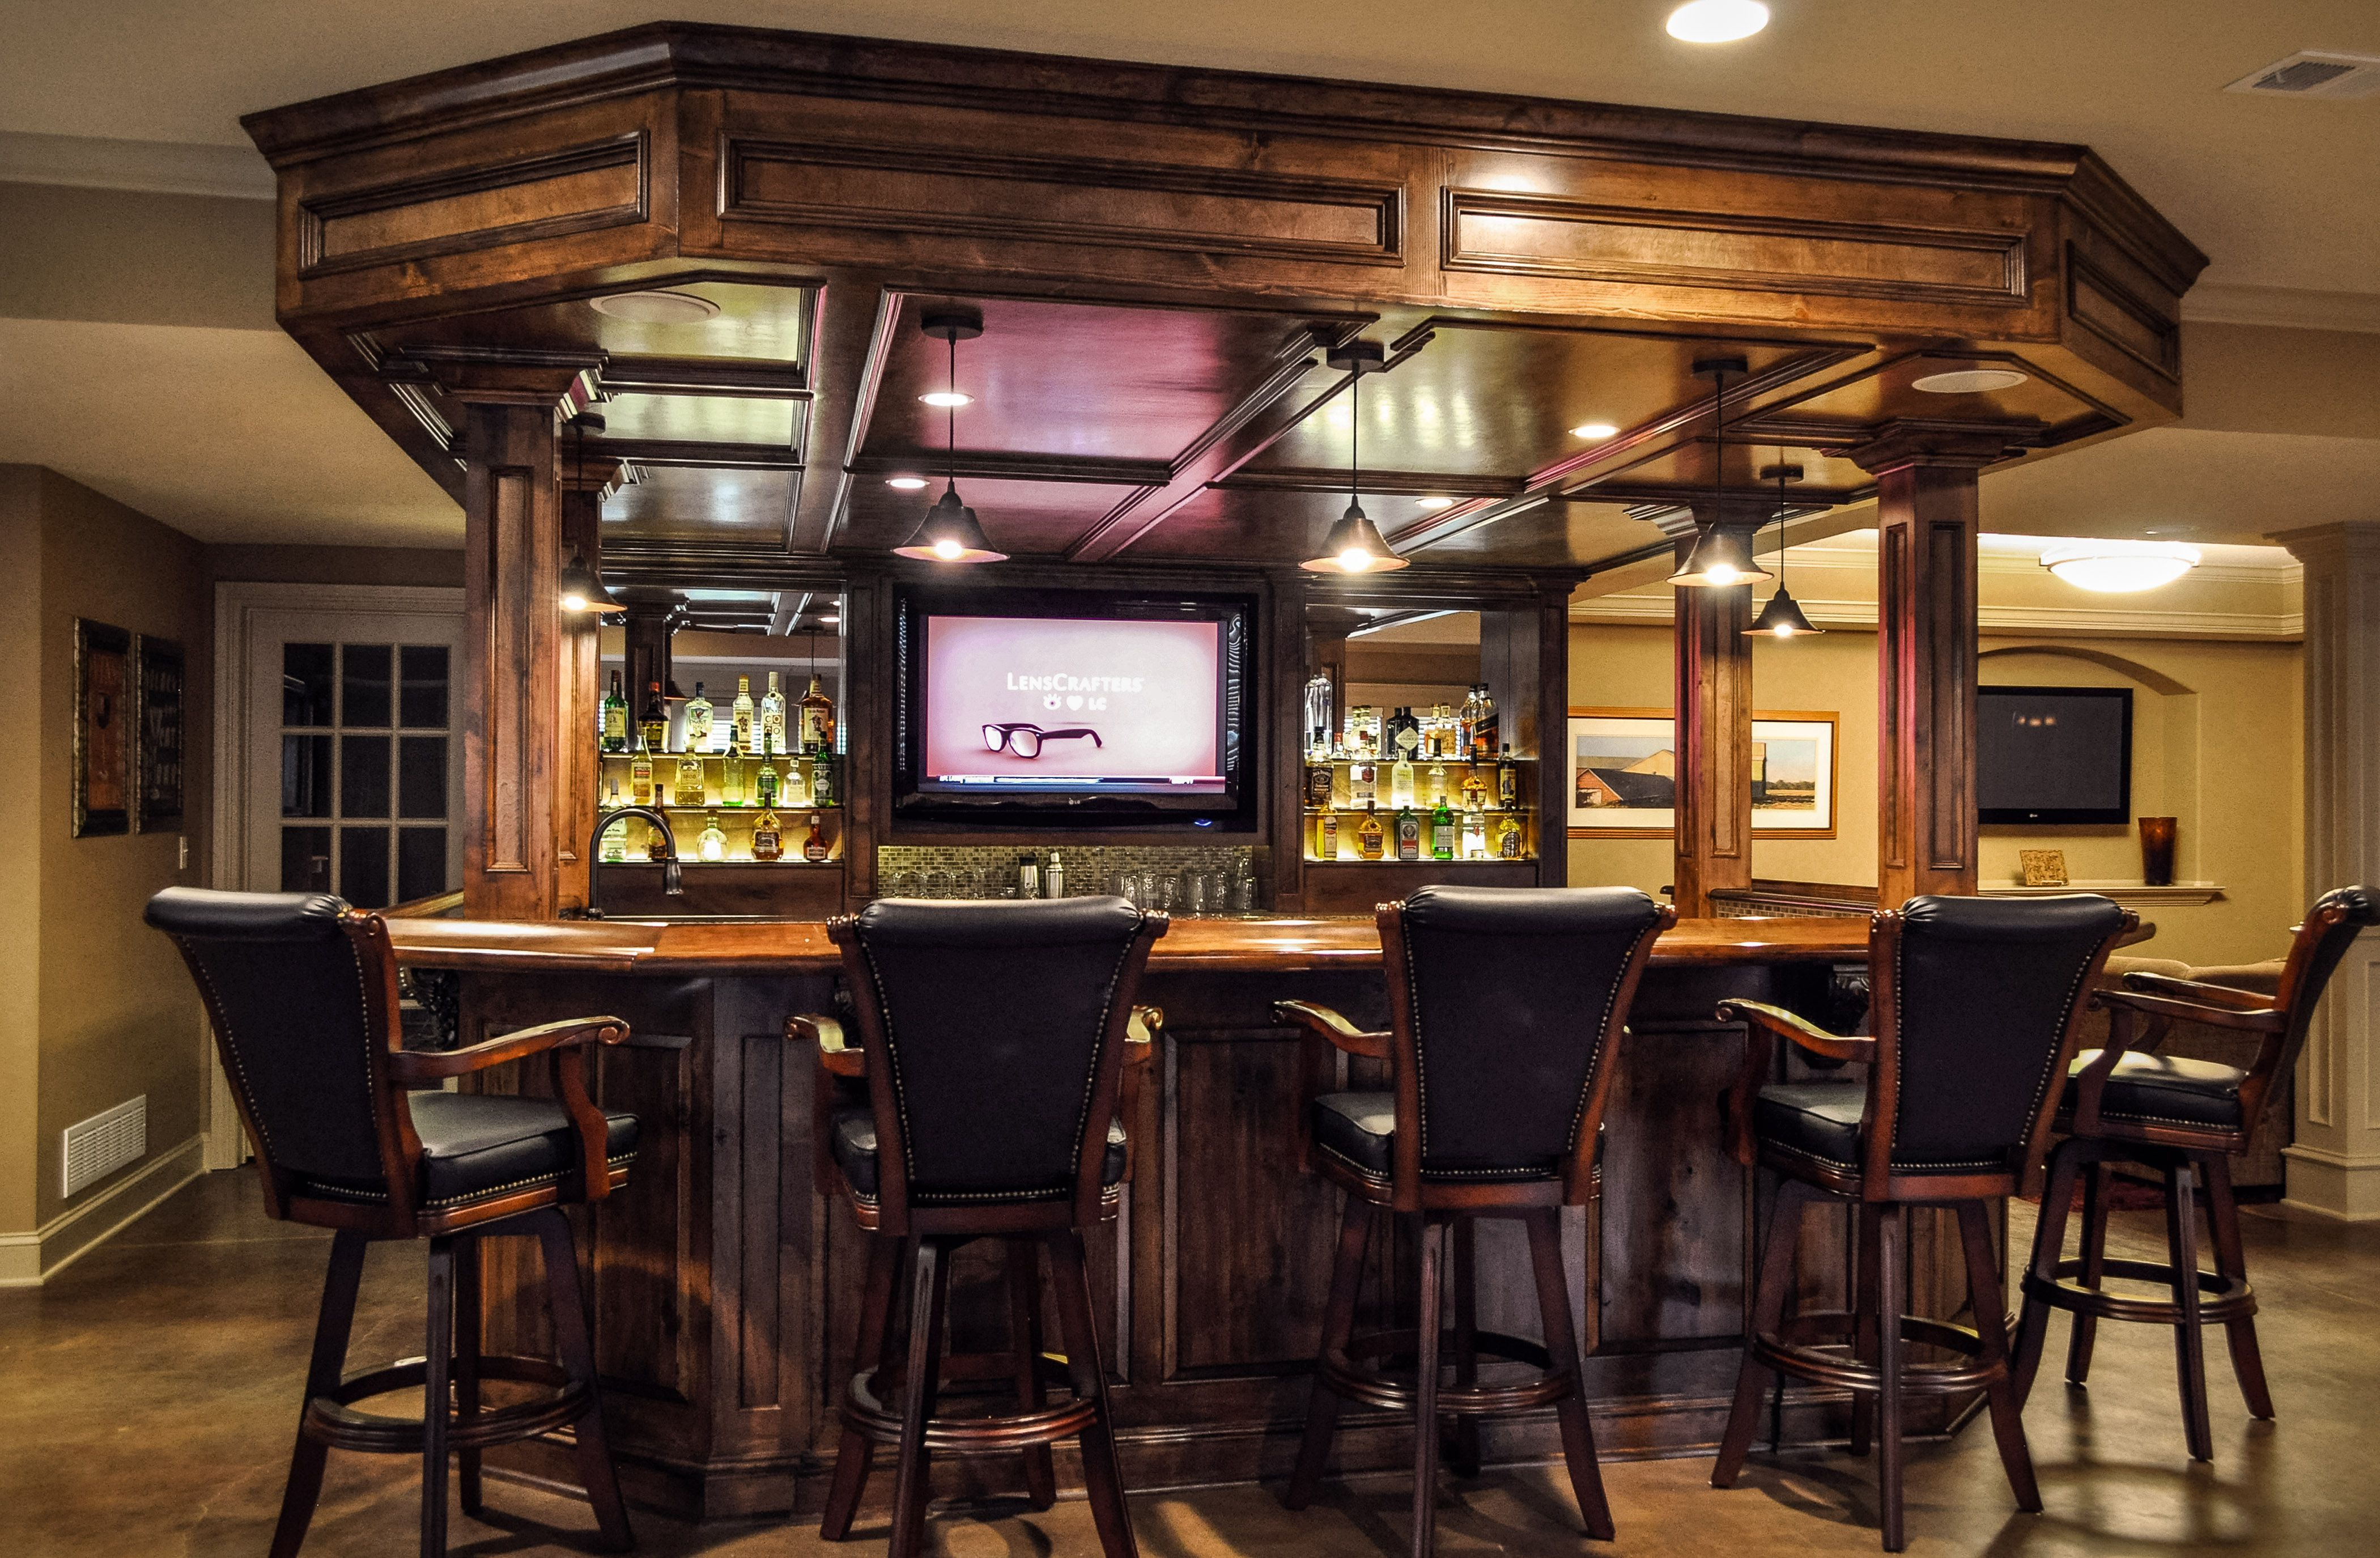 50 Insanely Cool Basement Bar Ideas For Your Home In 2020 Bars